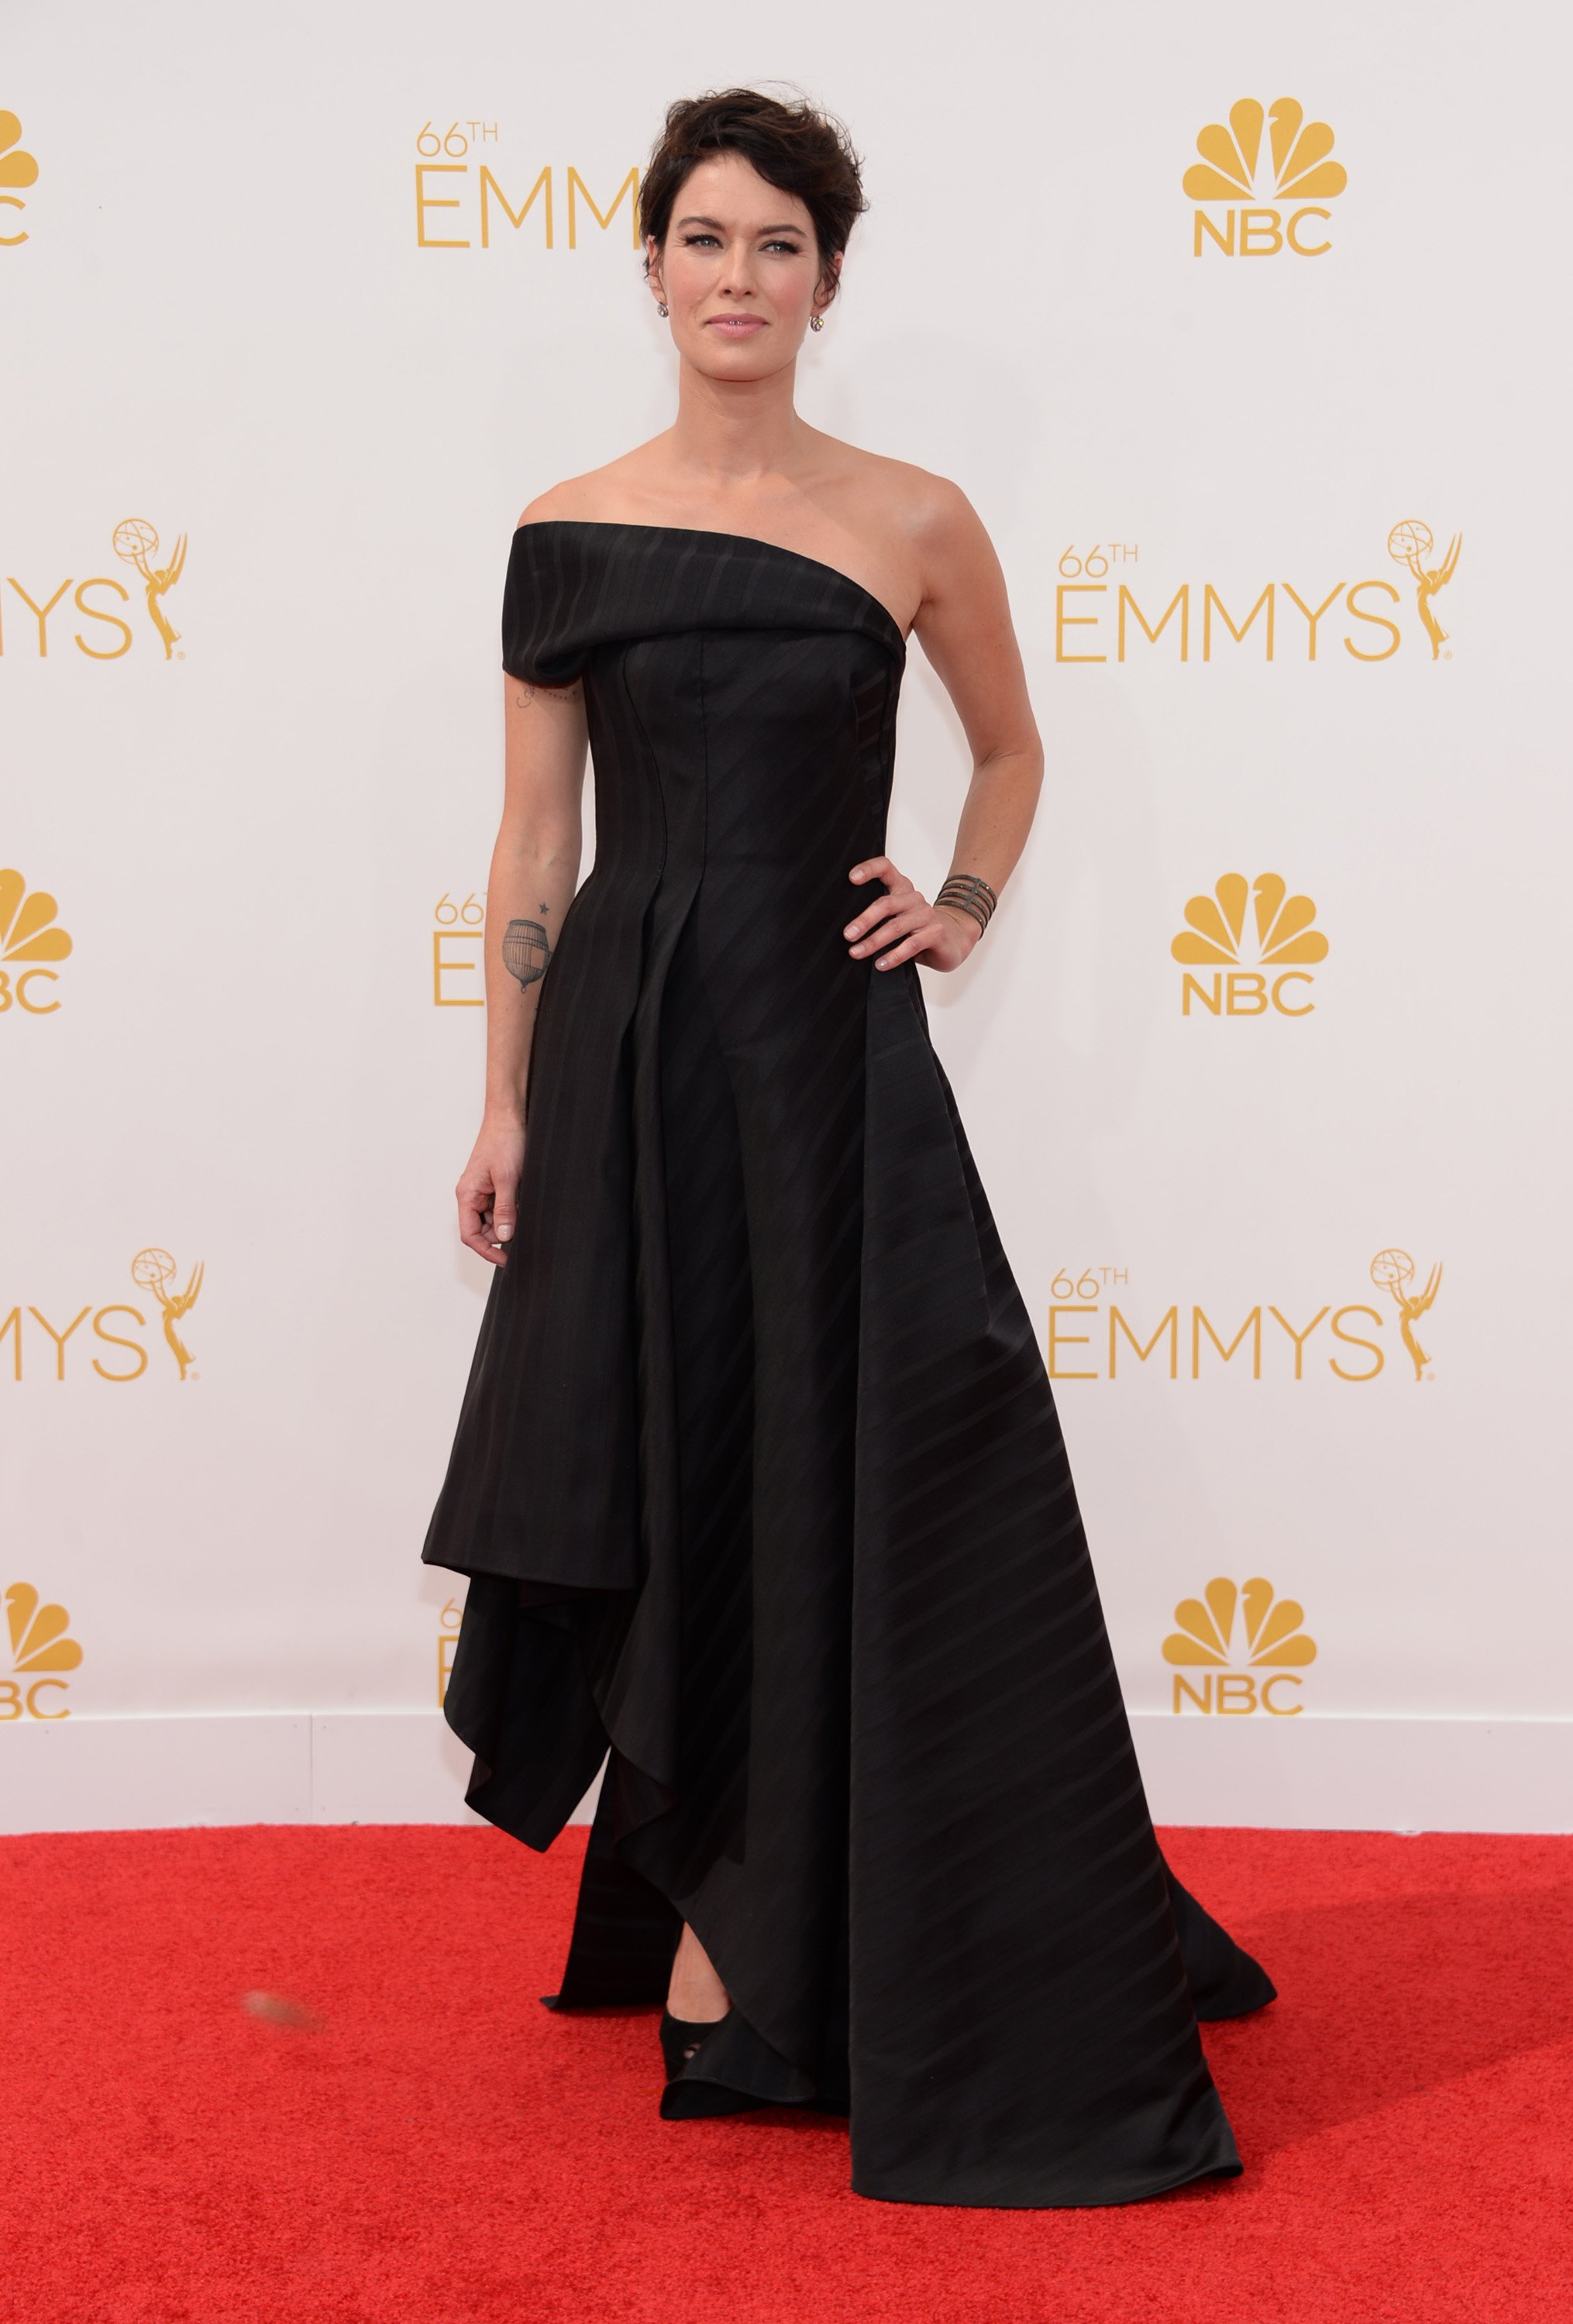 Lena Headey arrives at the 66th Primetime Emmy Awards at the Nokia Theatre L.A. Live on Monday, Aug. 25, 2014, in Los Angeles.